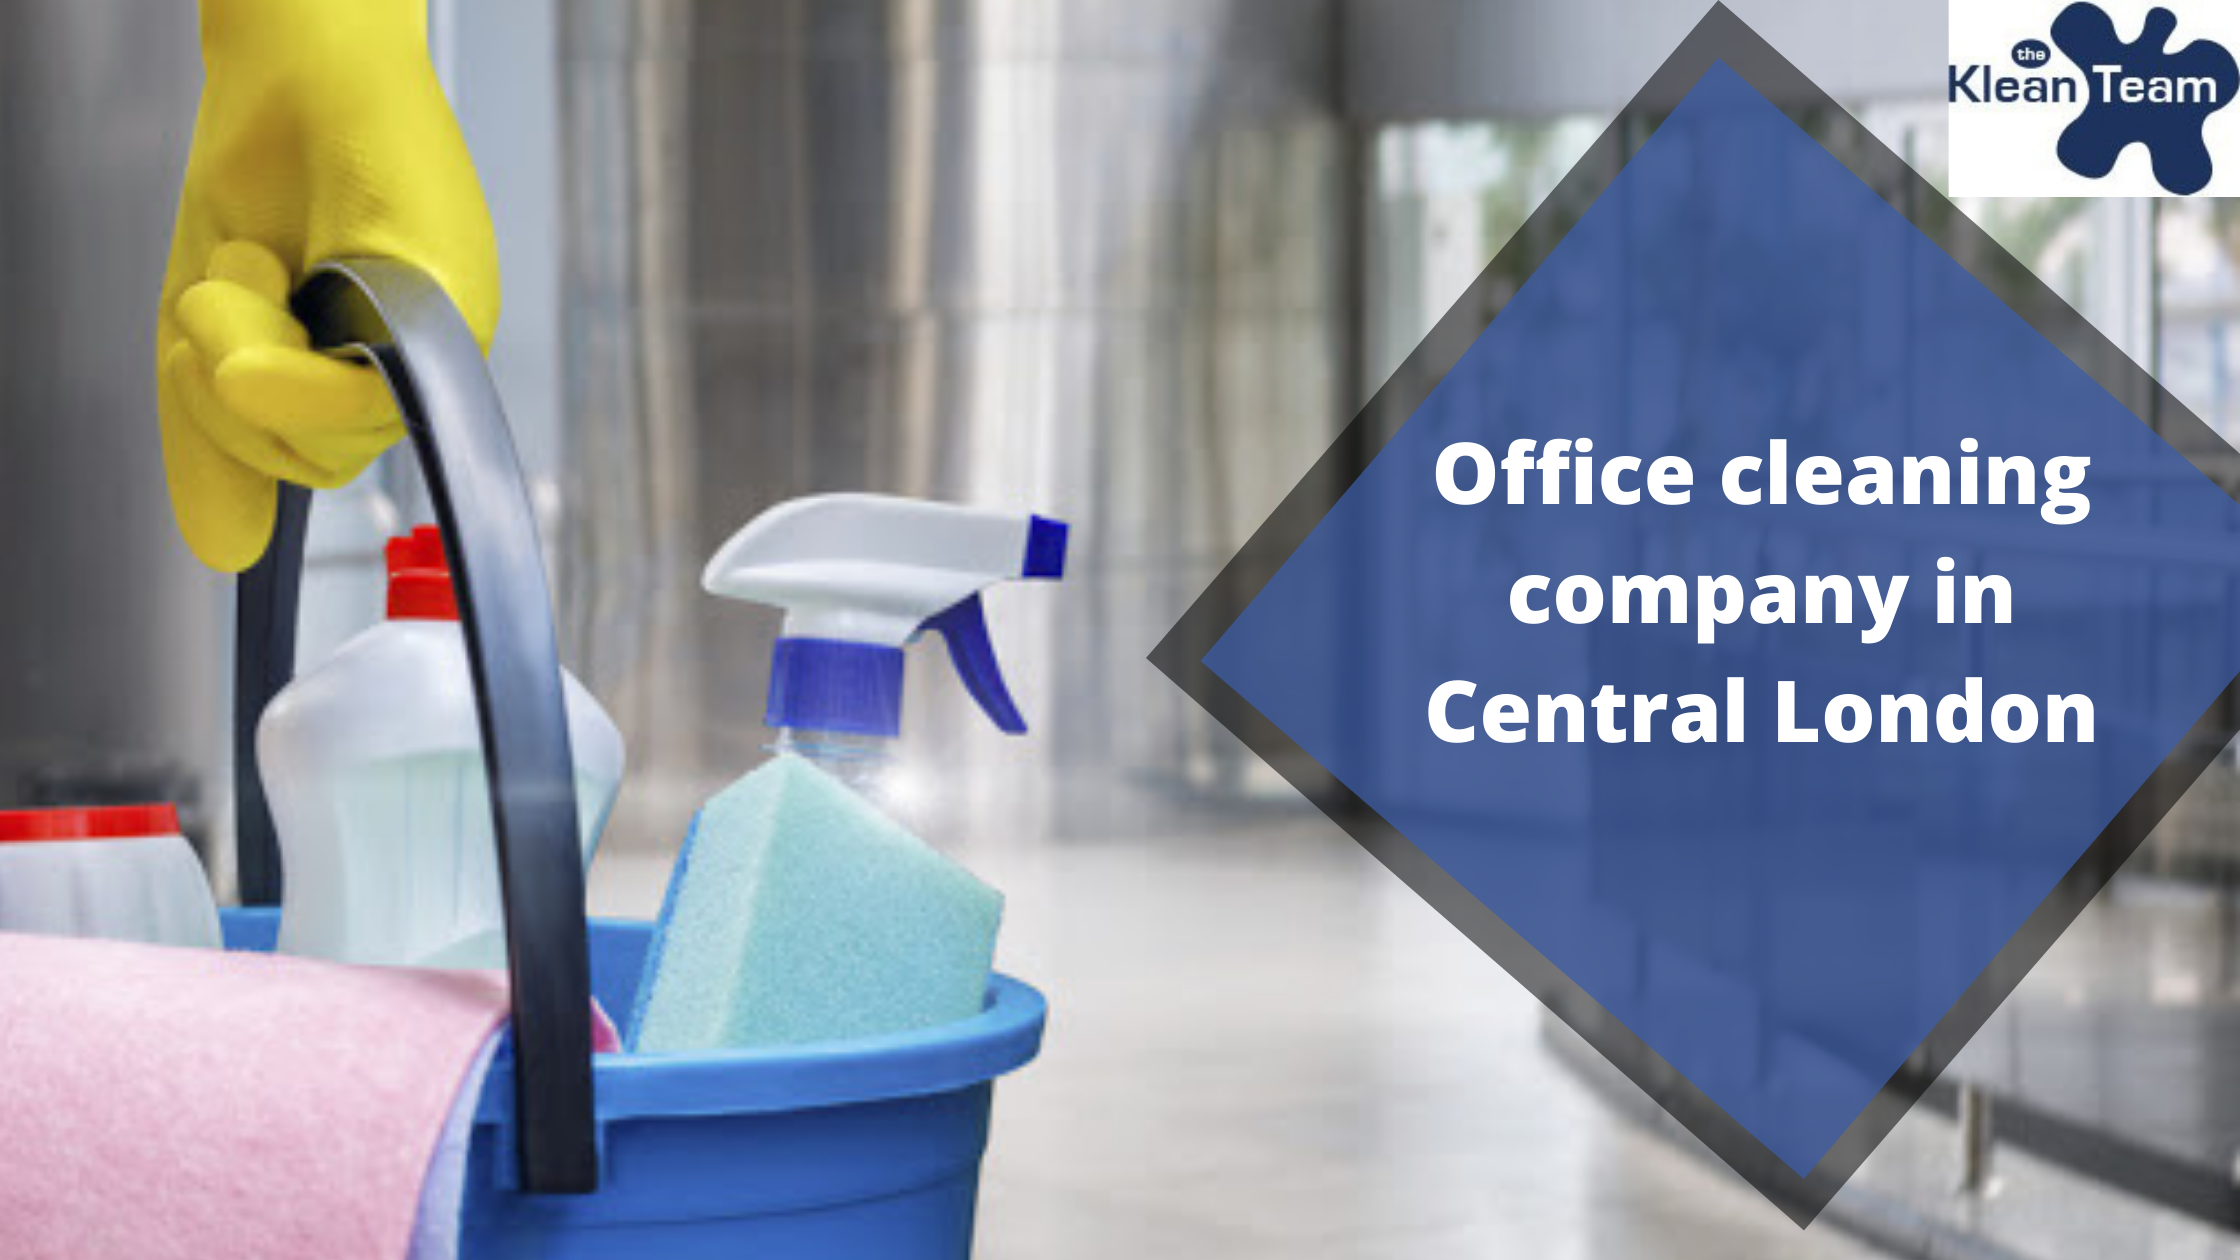 Office cleaning company in Central London